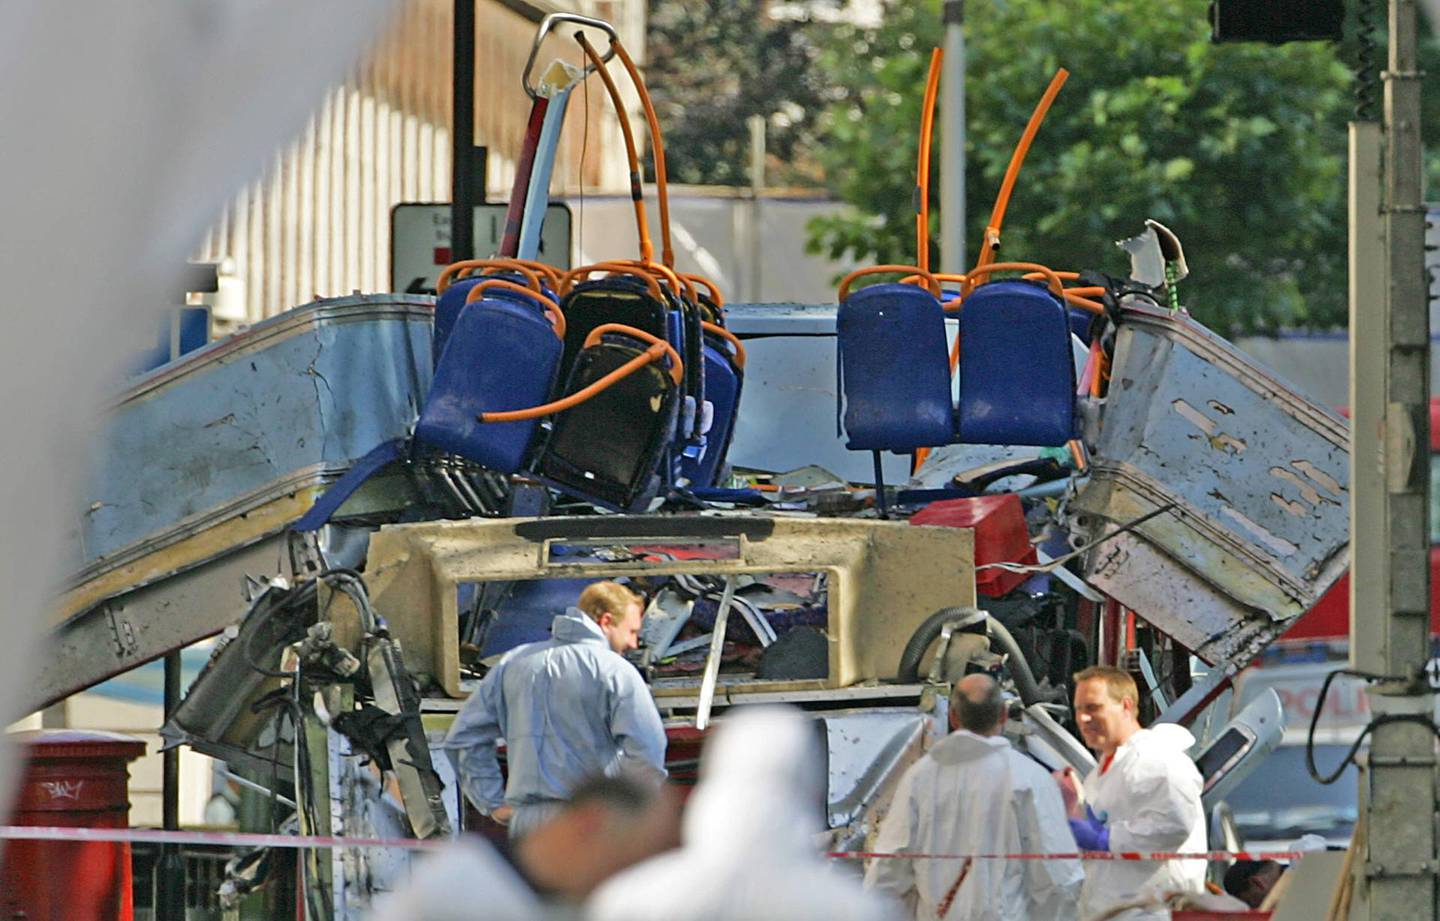 Forensic investigators collect evidences around the bombed out double-decker bus in Tavistock square in London 10 July 2005. At least 50 people were killed and 700 injured in the 07 July 2005 morning rush hour blasts on three underground trains and the bus. AFP PHOTO/ODD ANDERSEN (Photo by ODD ANDERSEN / AFP)